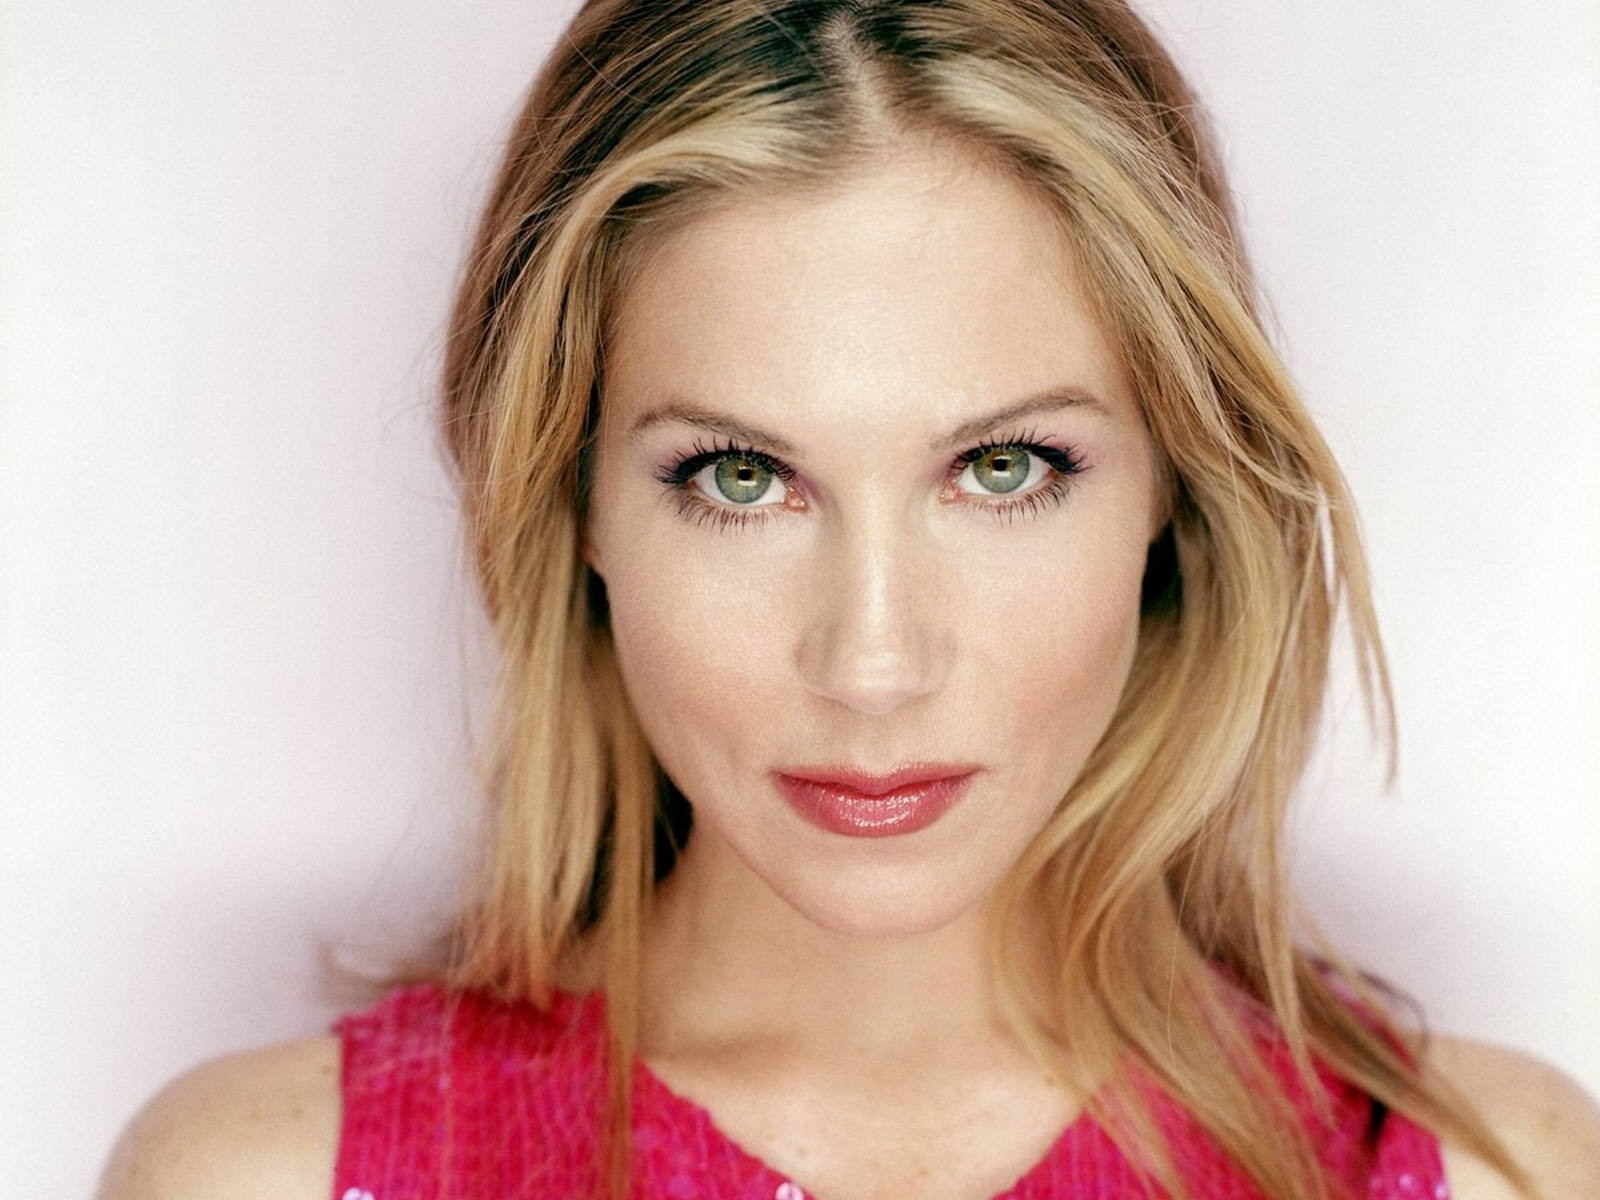 Christina Applegate Wallpapers High Resolution and Quality 1600x1200